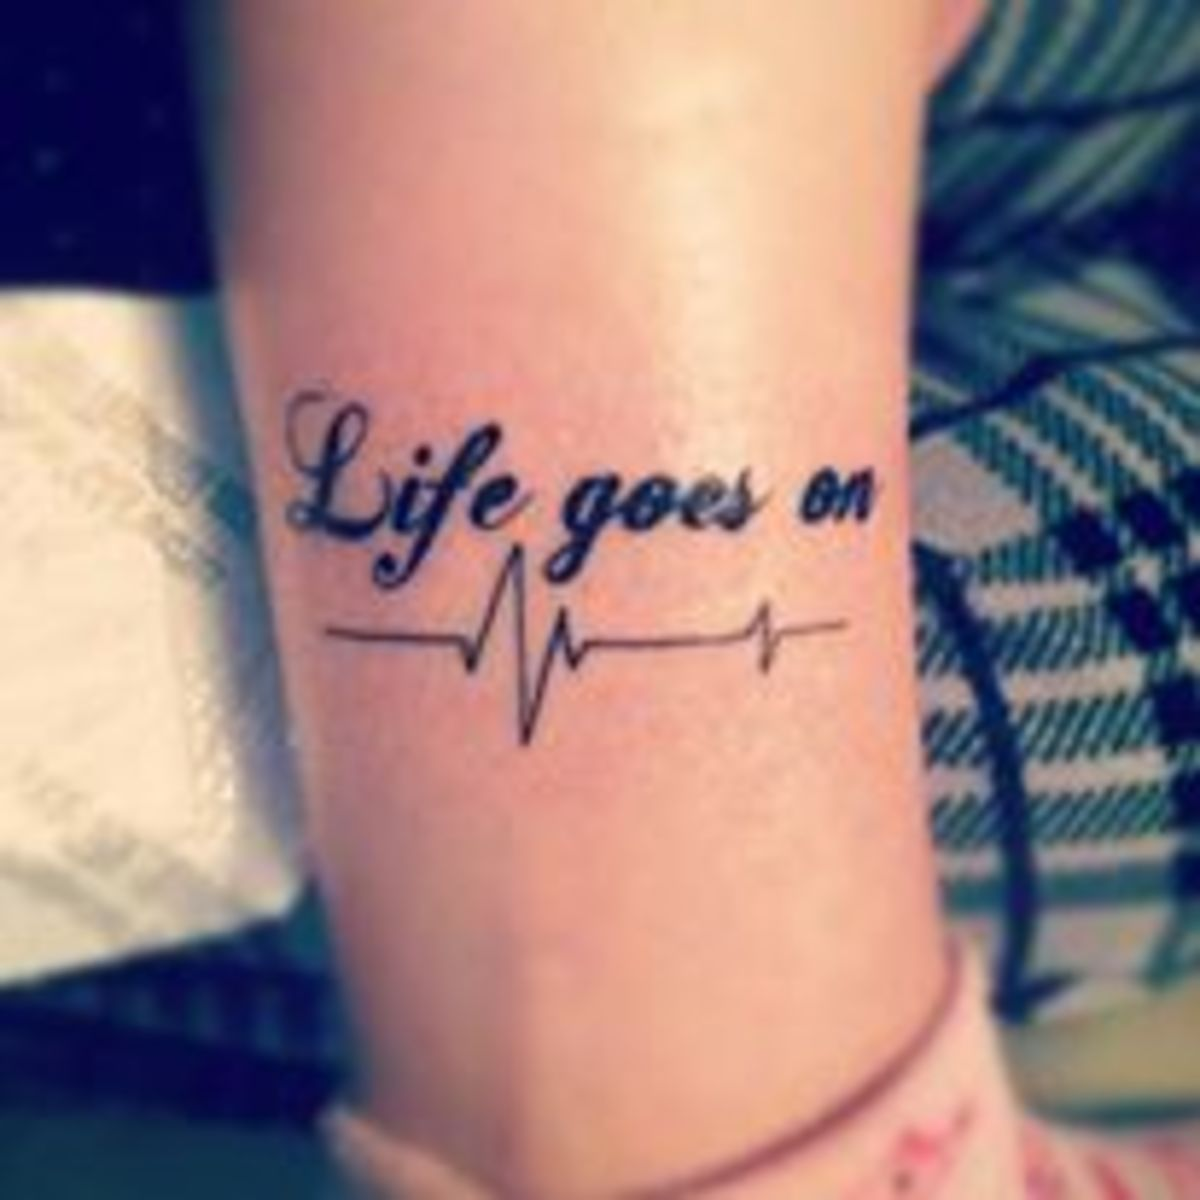 Tattoo Ideas And Designs For Your First Tattoo Tatring Ideas And Designs